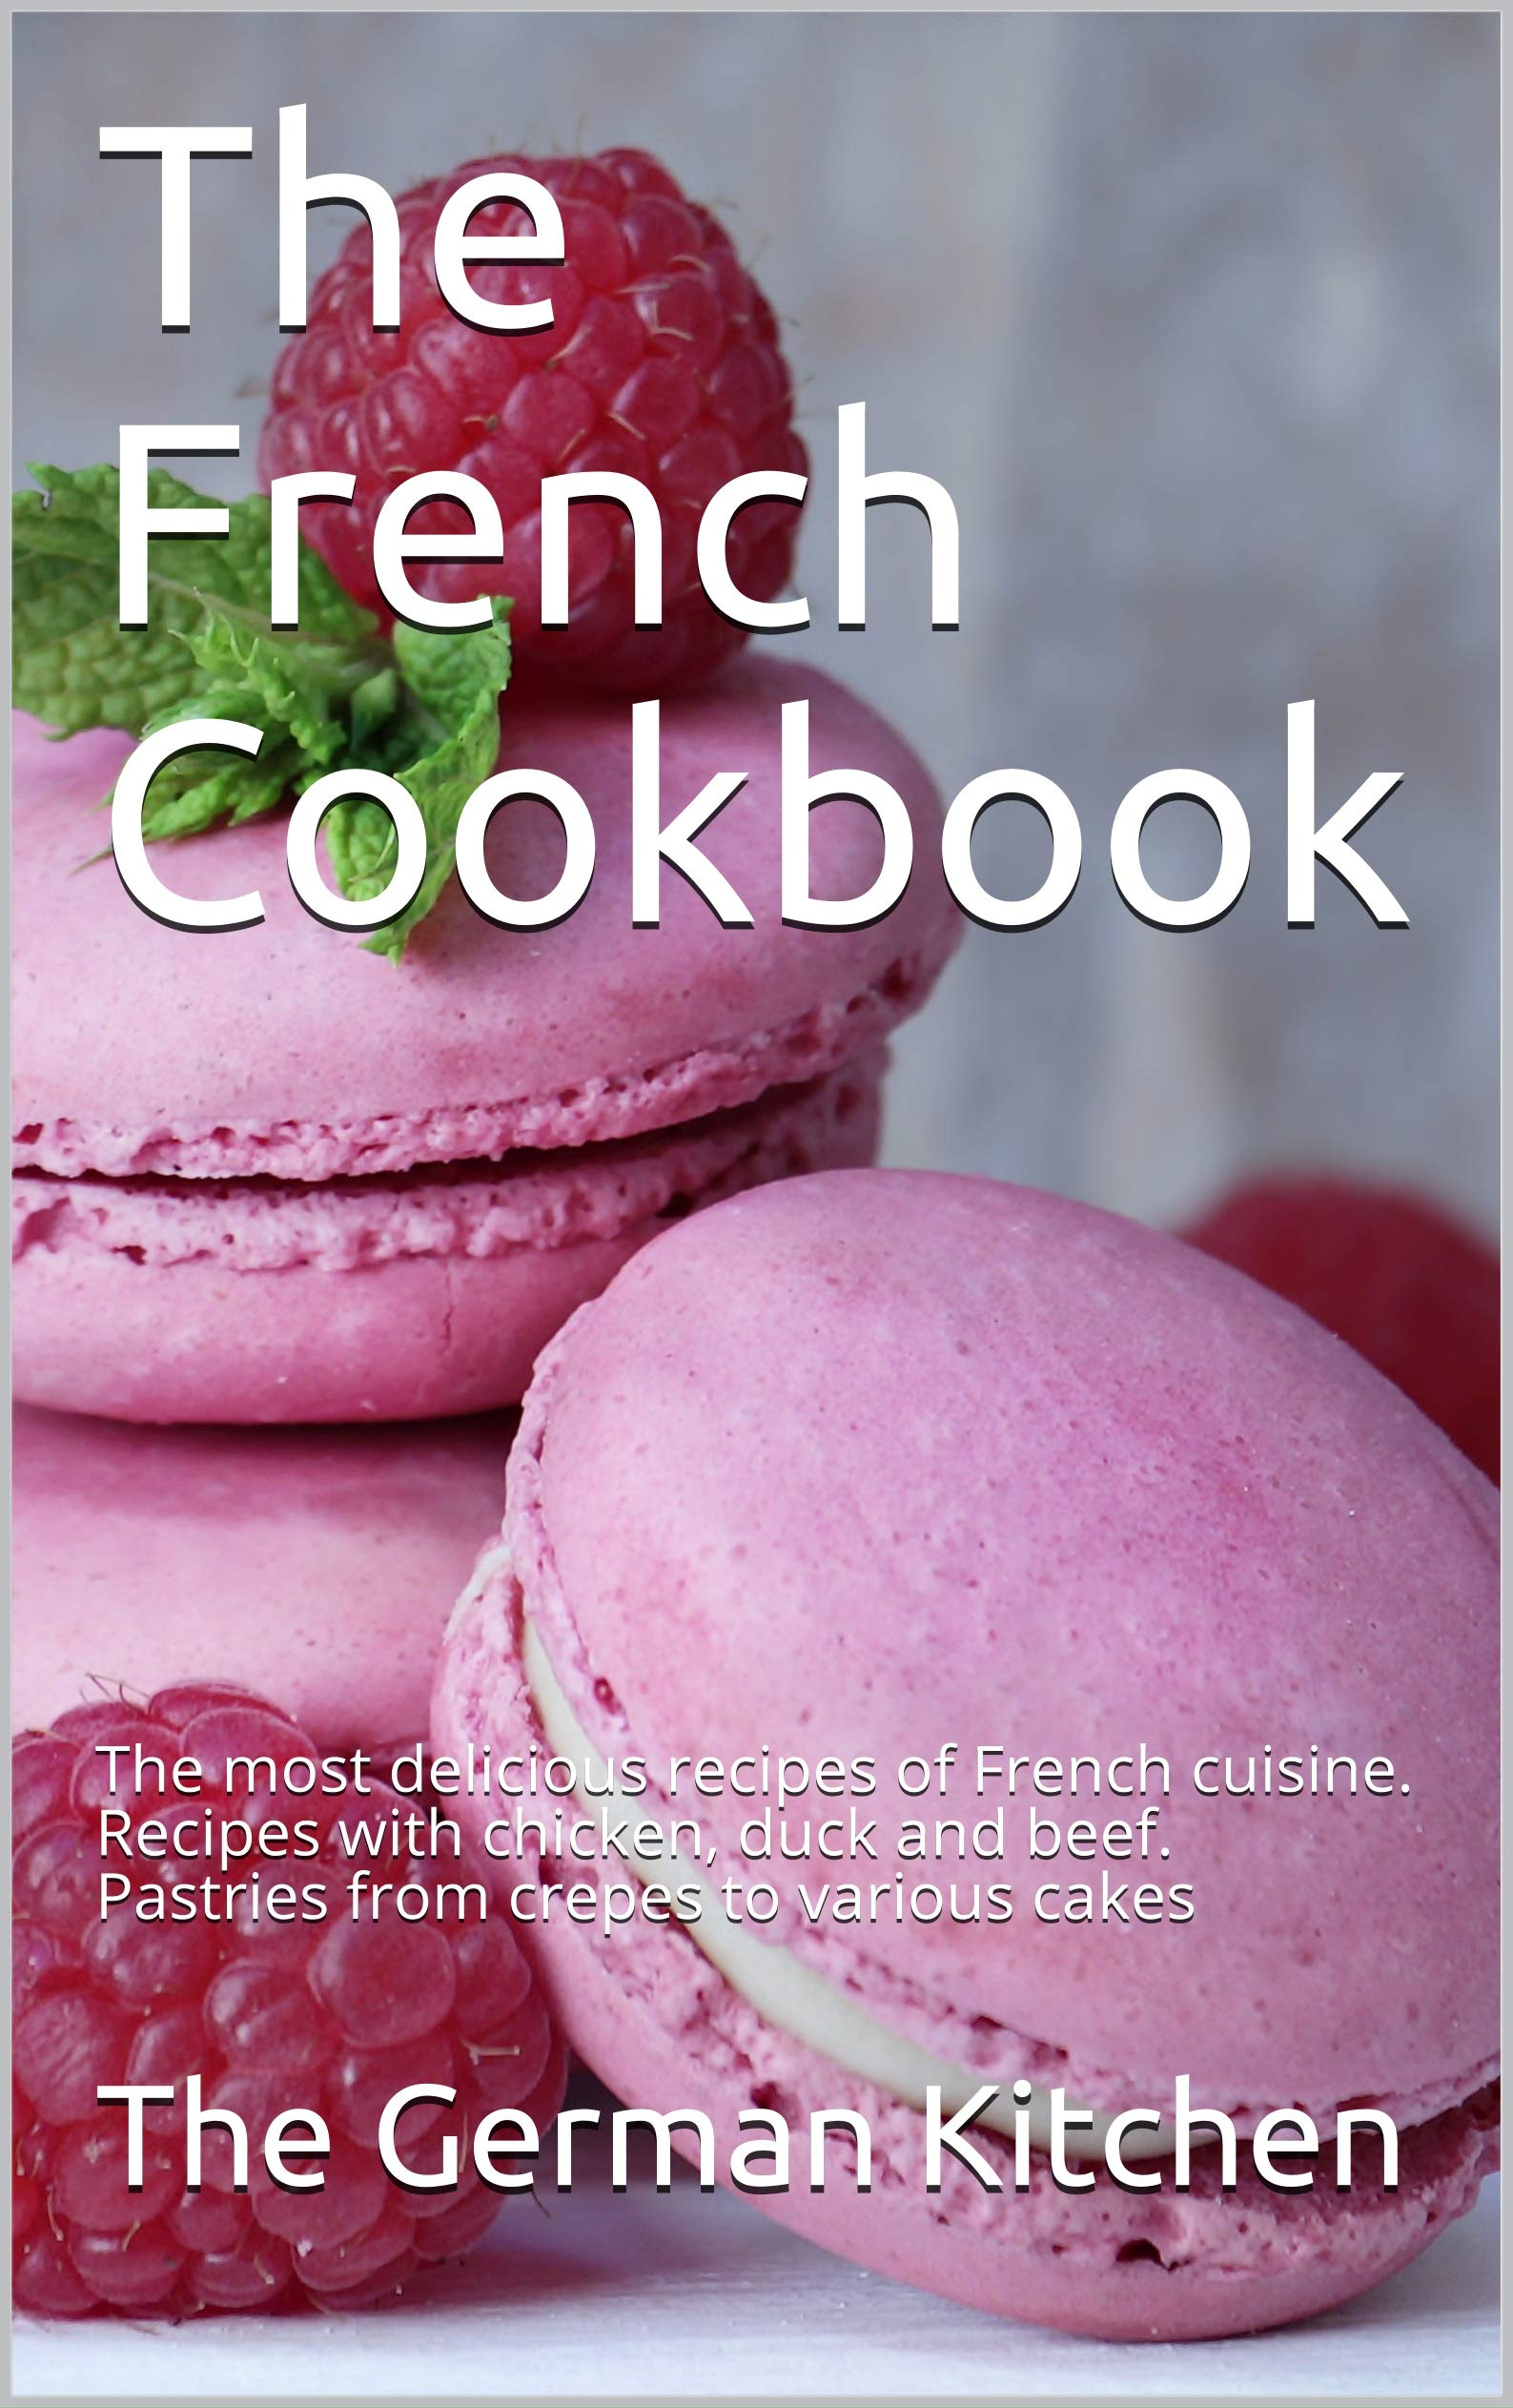 The French Cookbook: The most delicious recipes of French cuisine. Recipes with chicken, duck and beef. Pastries from crepes to various cakes